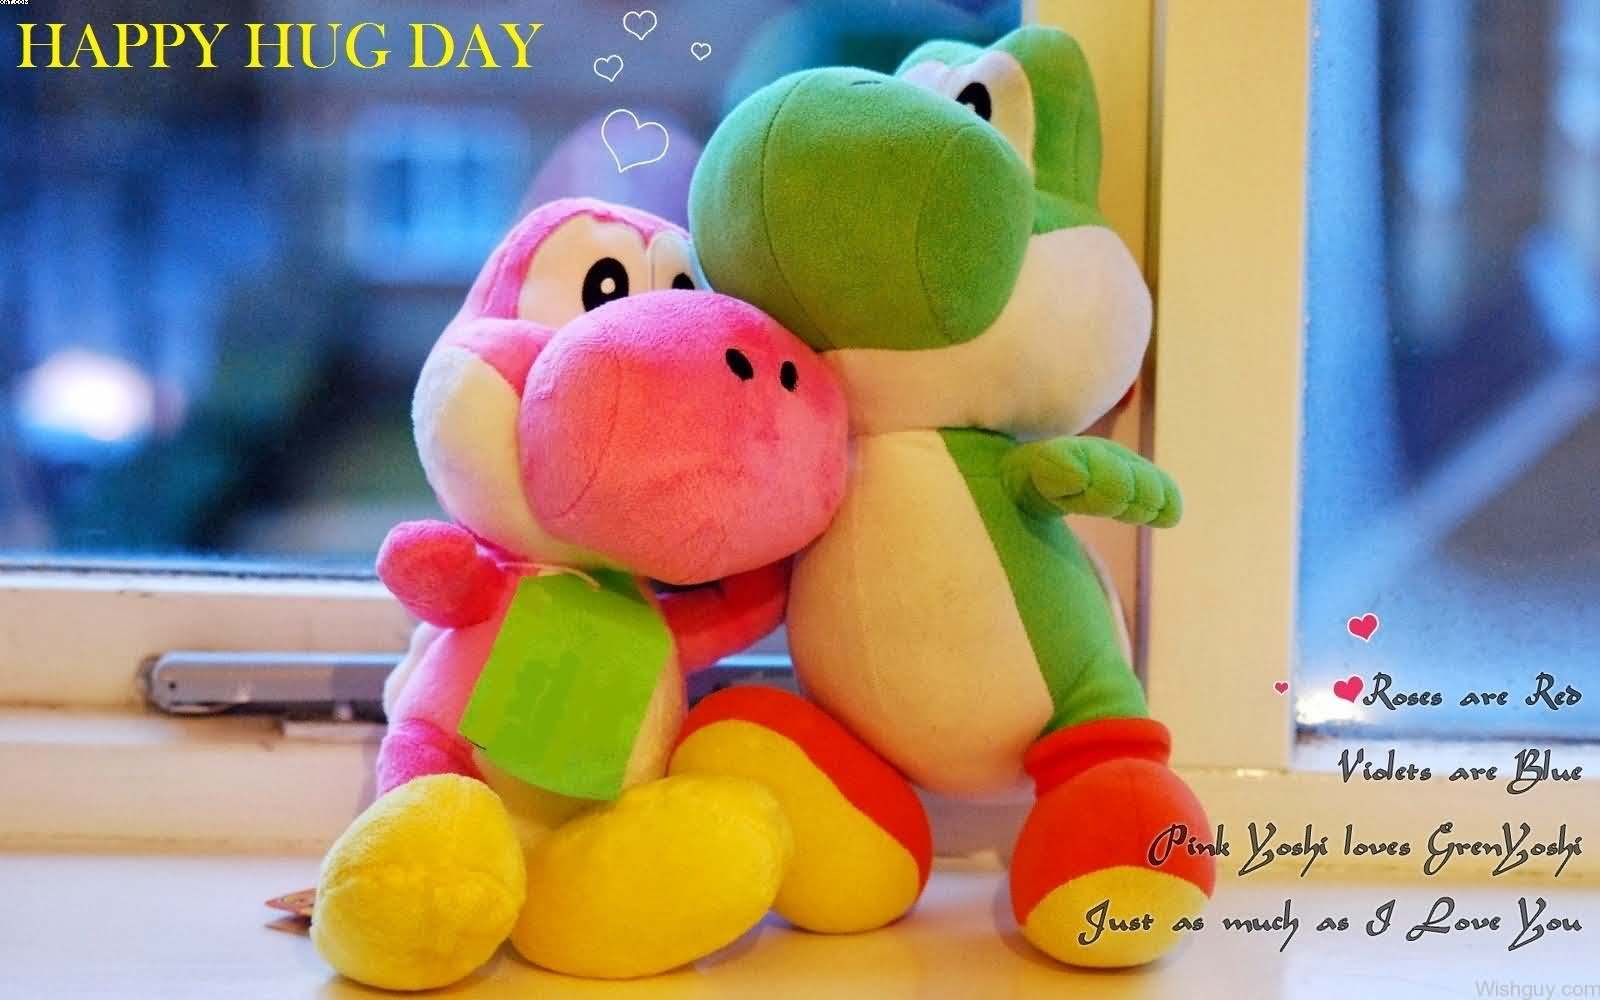 Roses are red violets are blue pink yoshi loves green yoshi just as much as I Love You